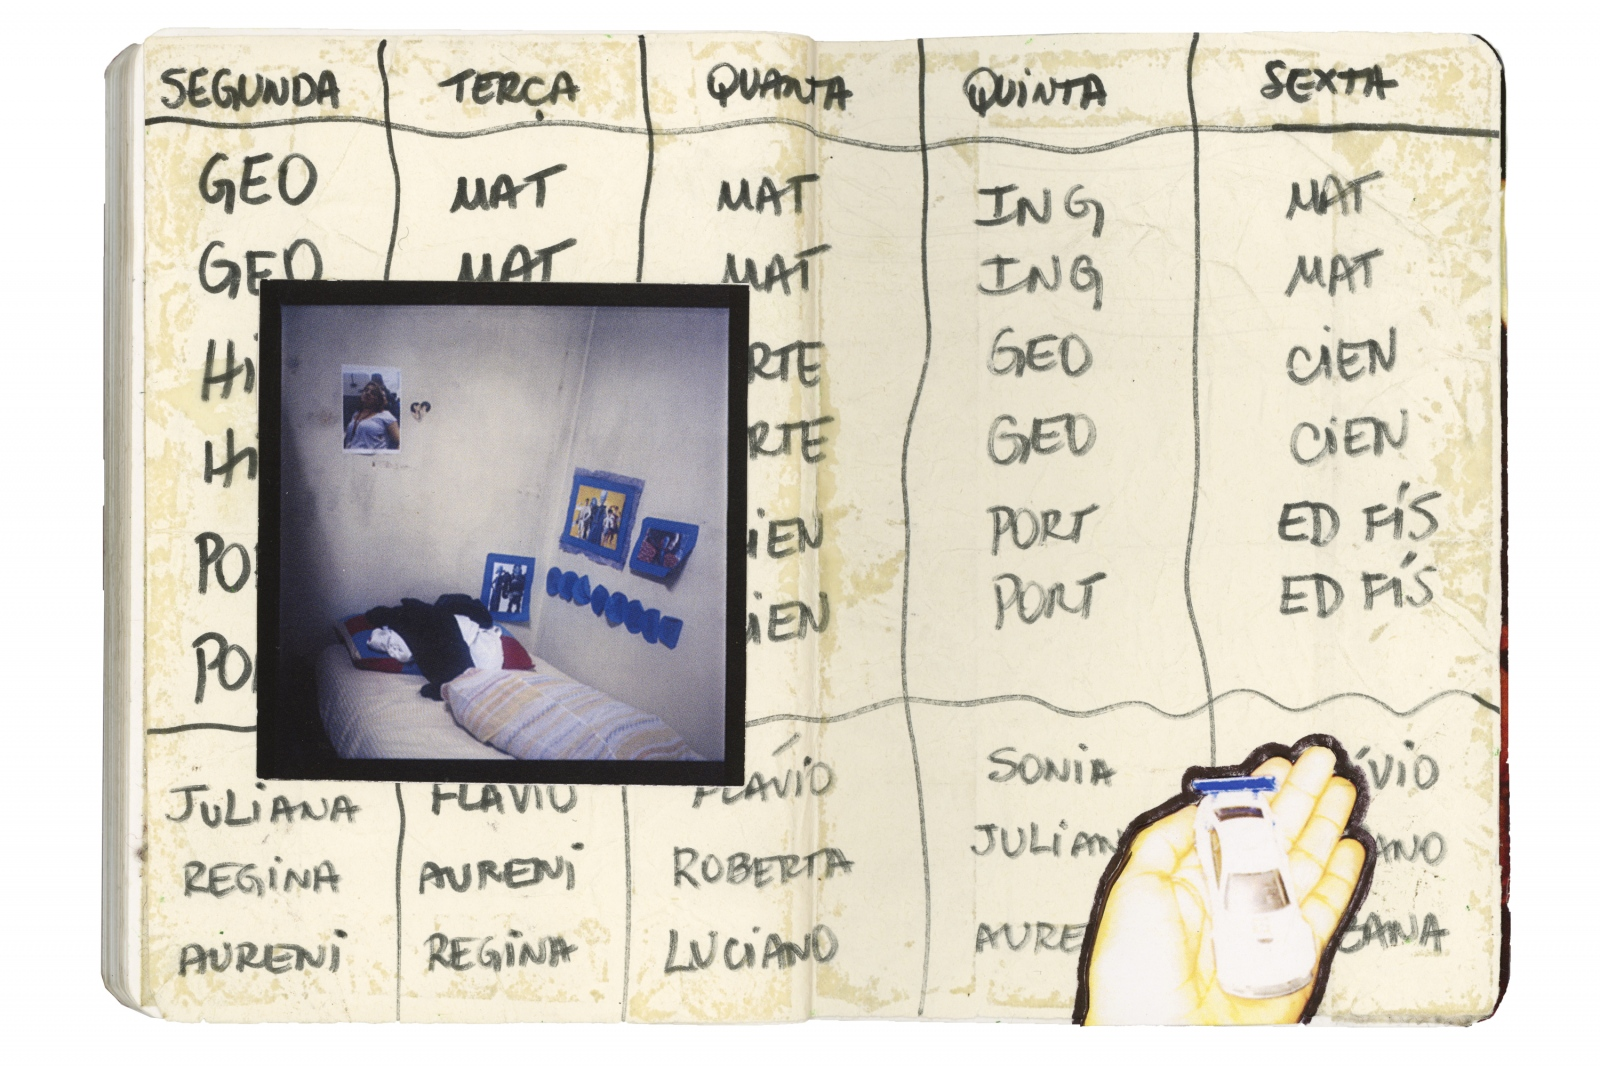 Collage with a photograph that shows a child's bed, over a school schedule recovered from the squat.